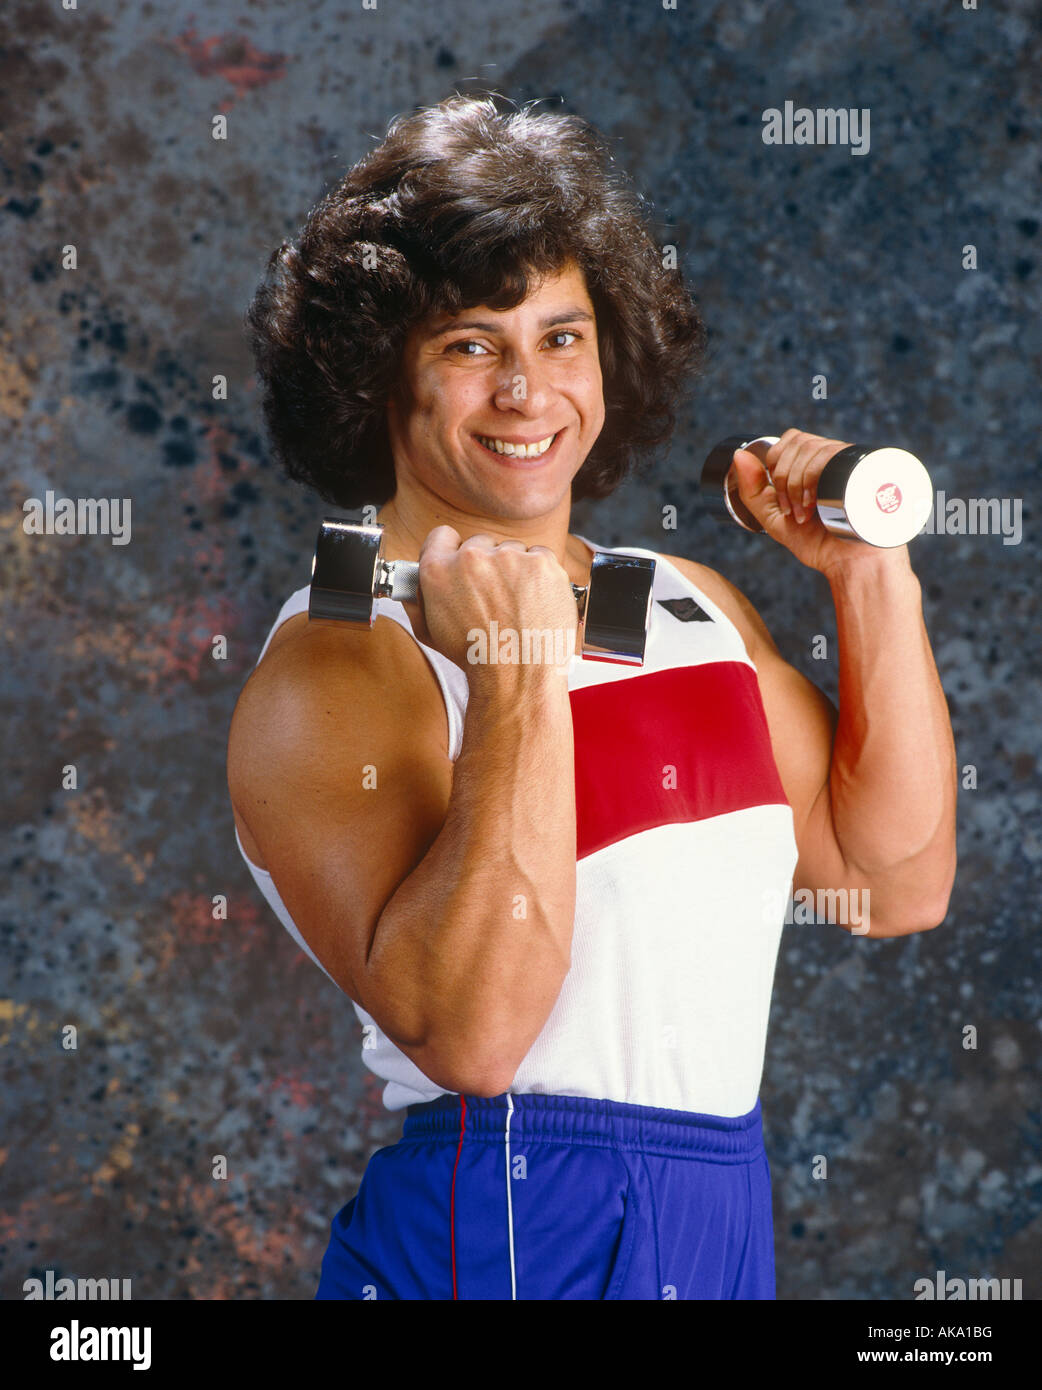 Fatima Whitbread 2 Olympic medals in javelin throw